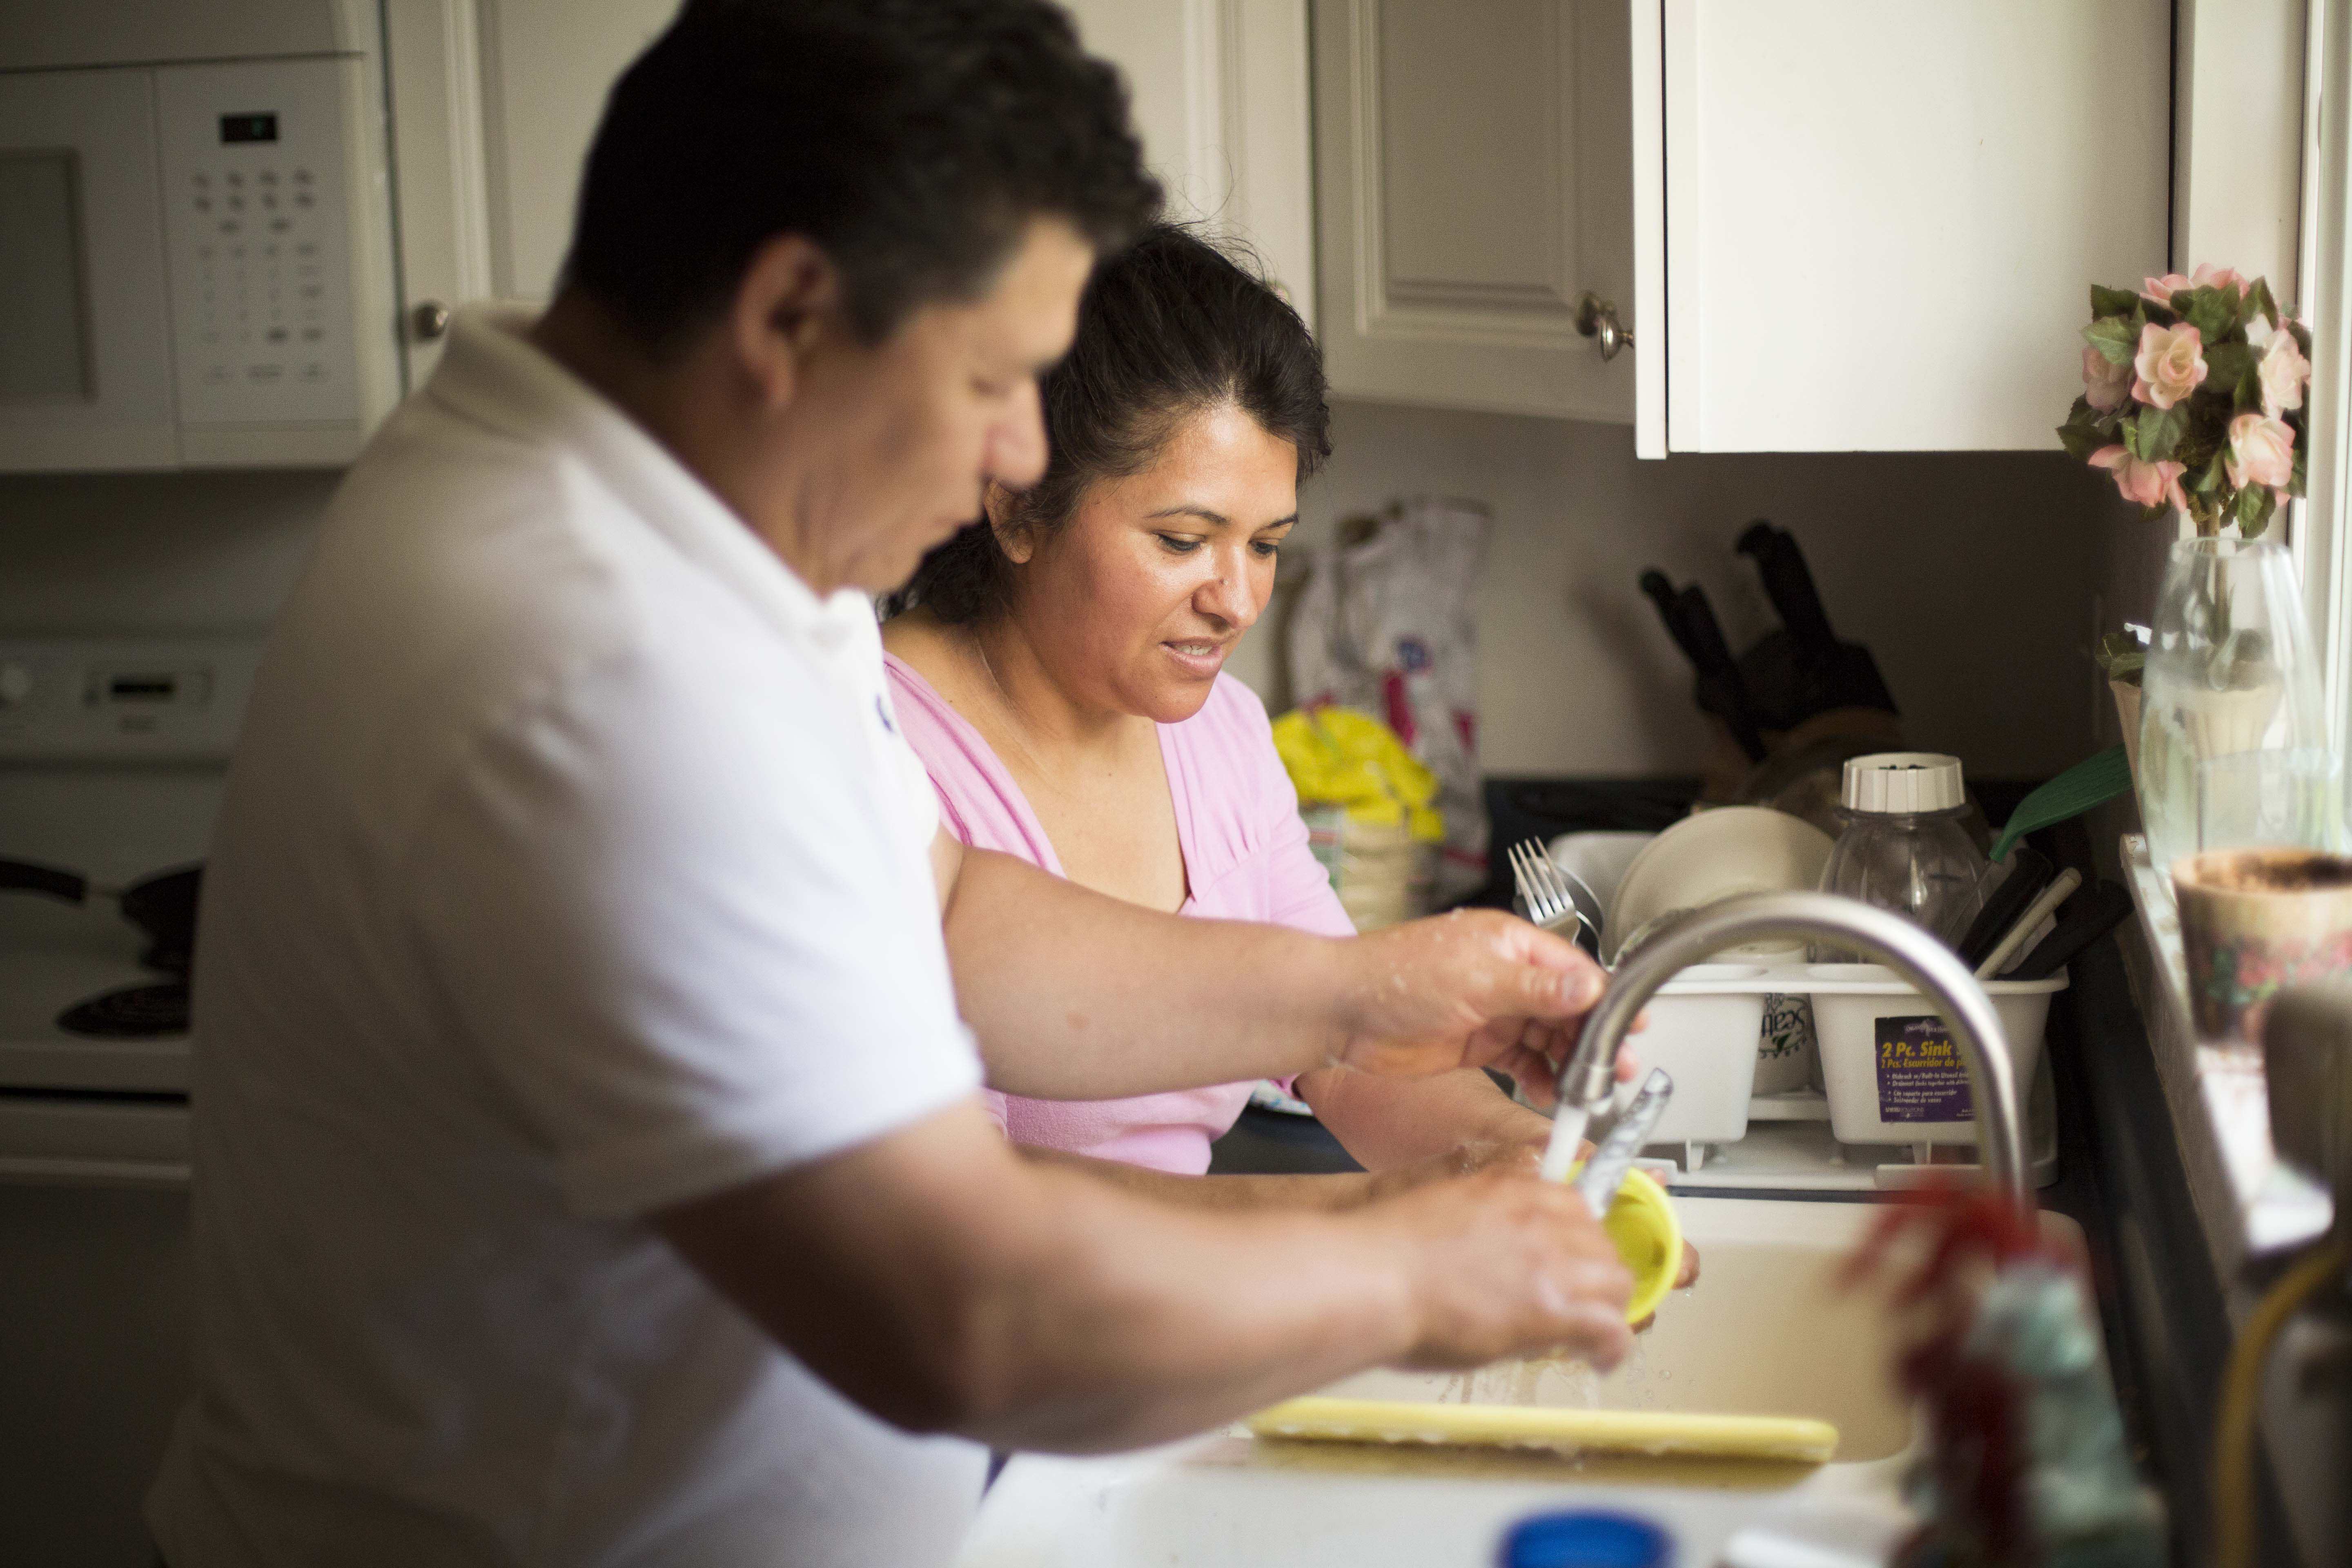 A husband and wife stand by their kitchen sink and wash dishes together.